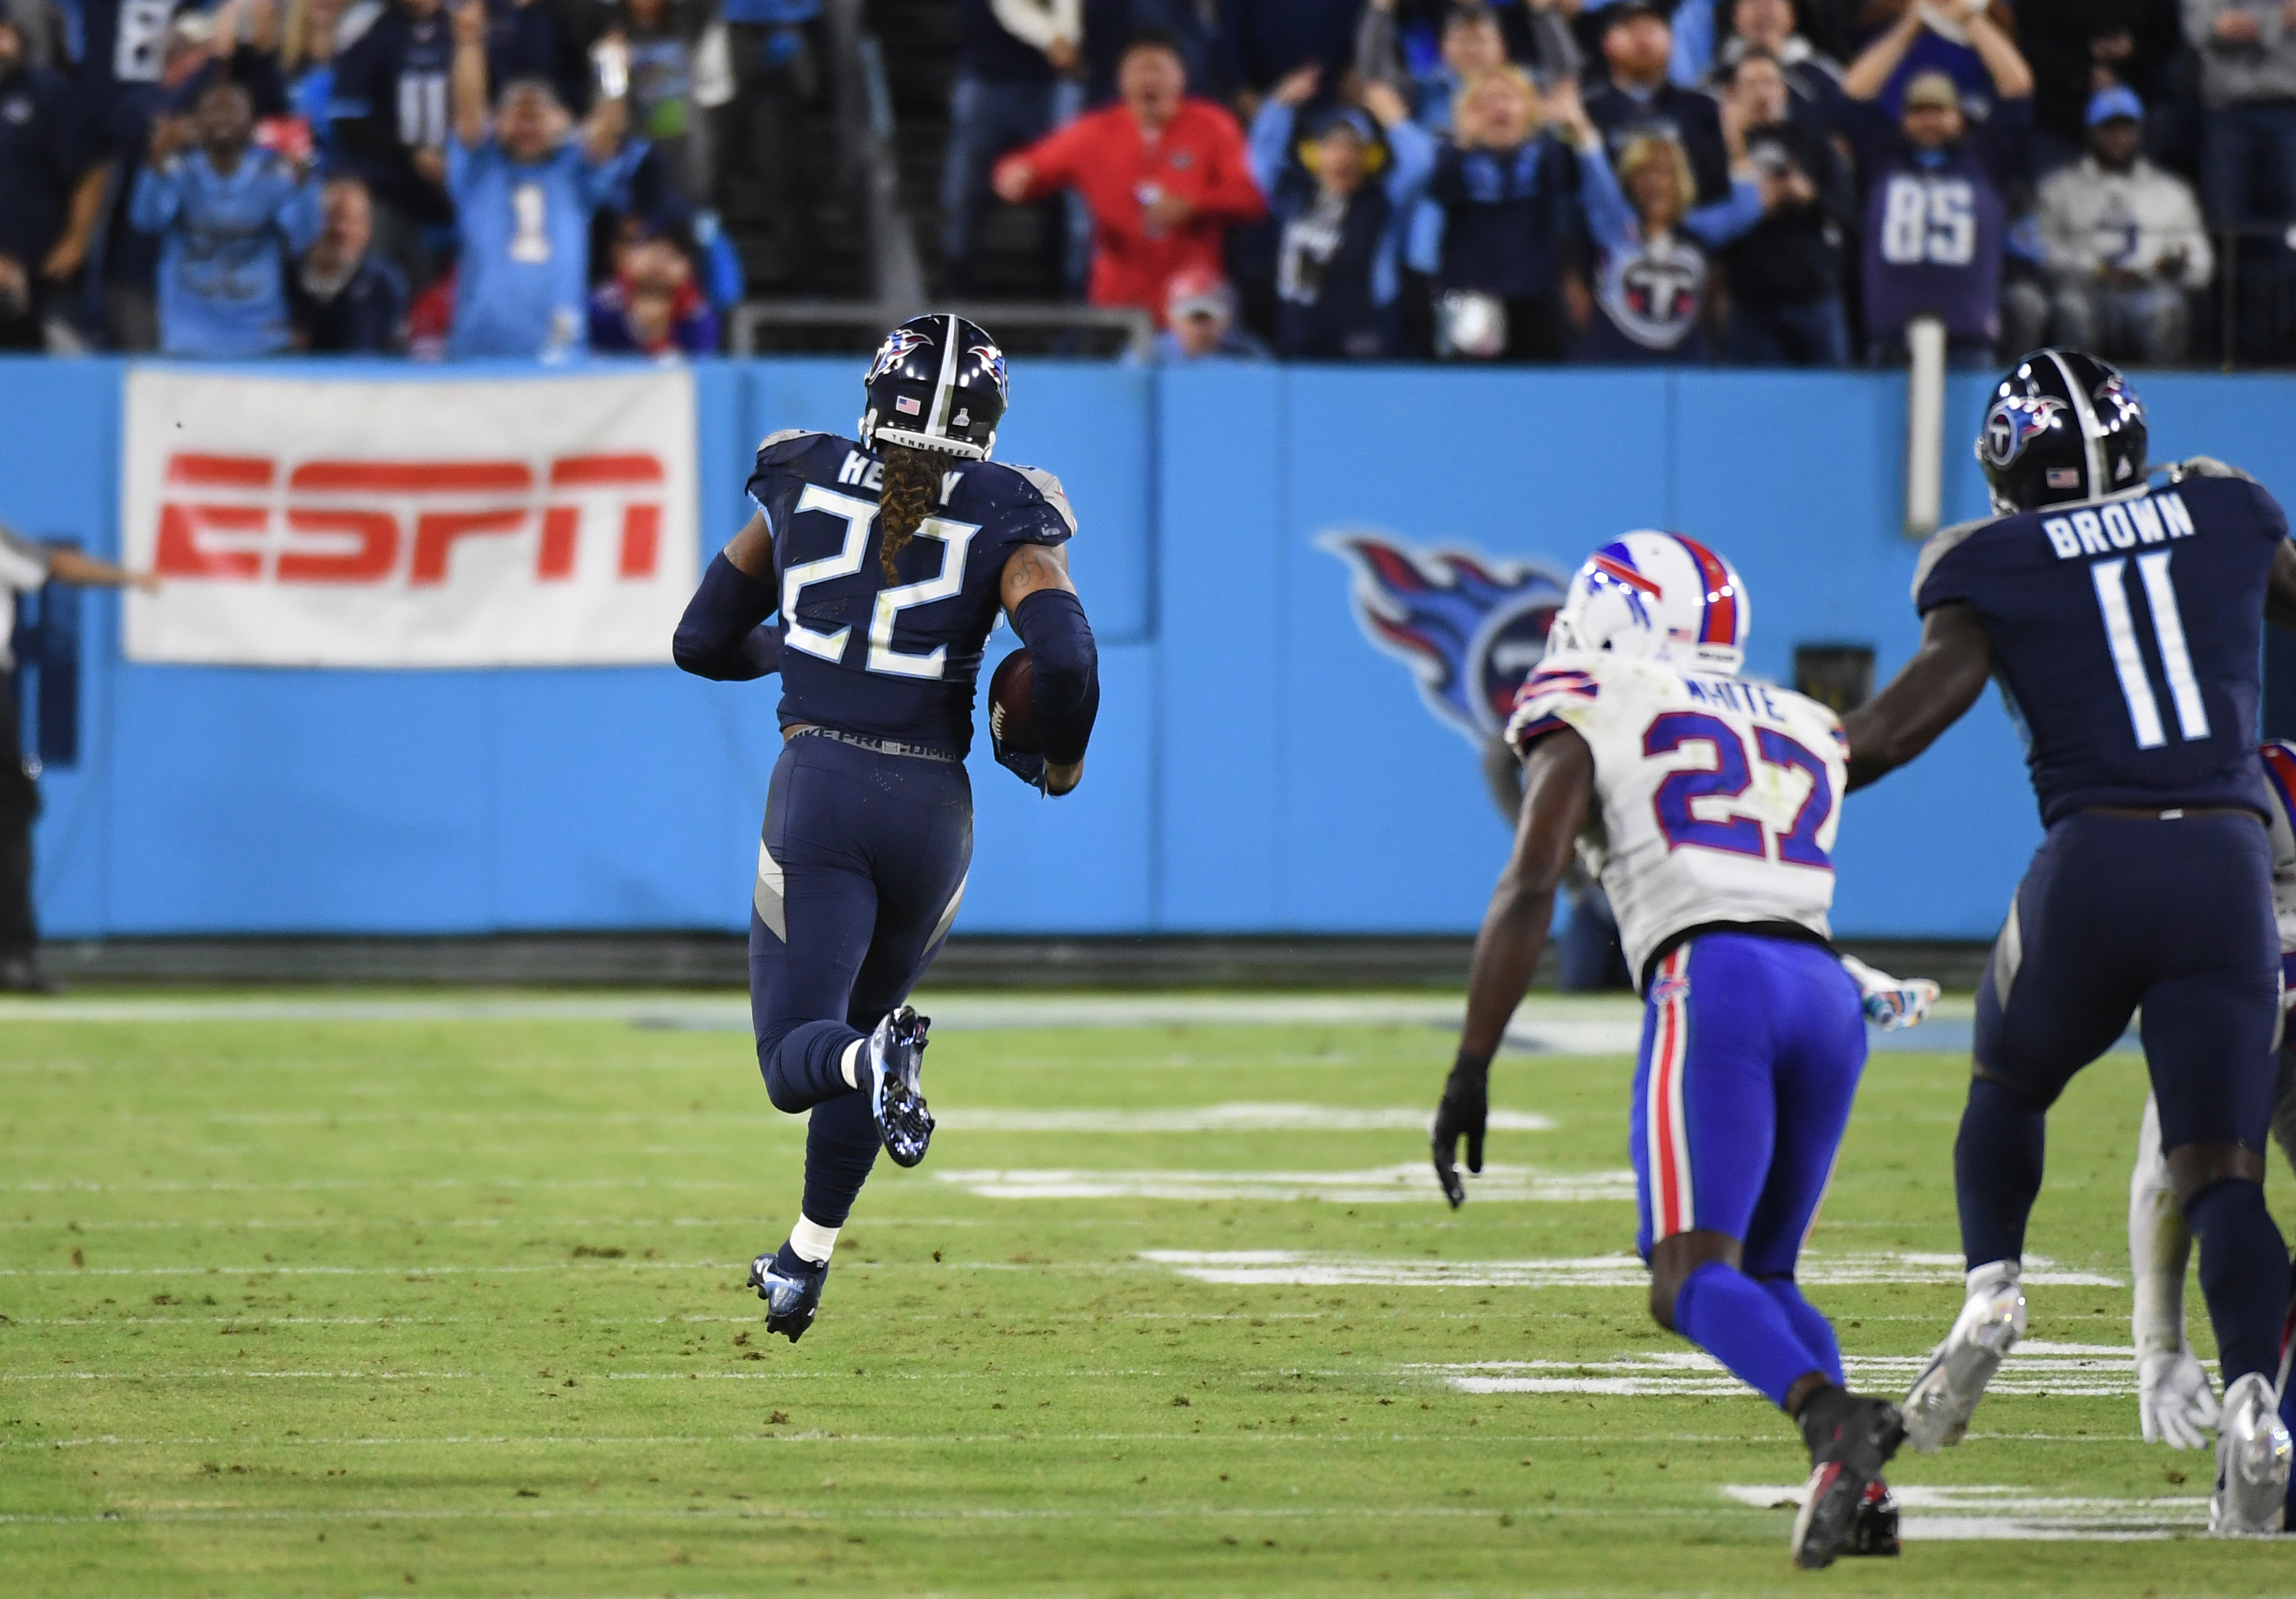 Tennessee Titans running back Derrick Henry (22) runs for a touchdown during the first half against the Buffalo Bills at Nissan Stadium.